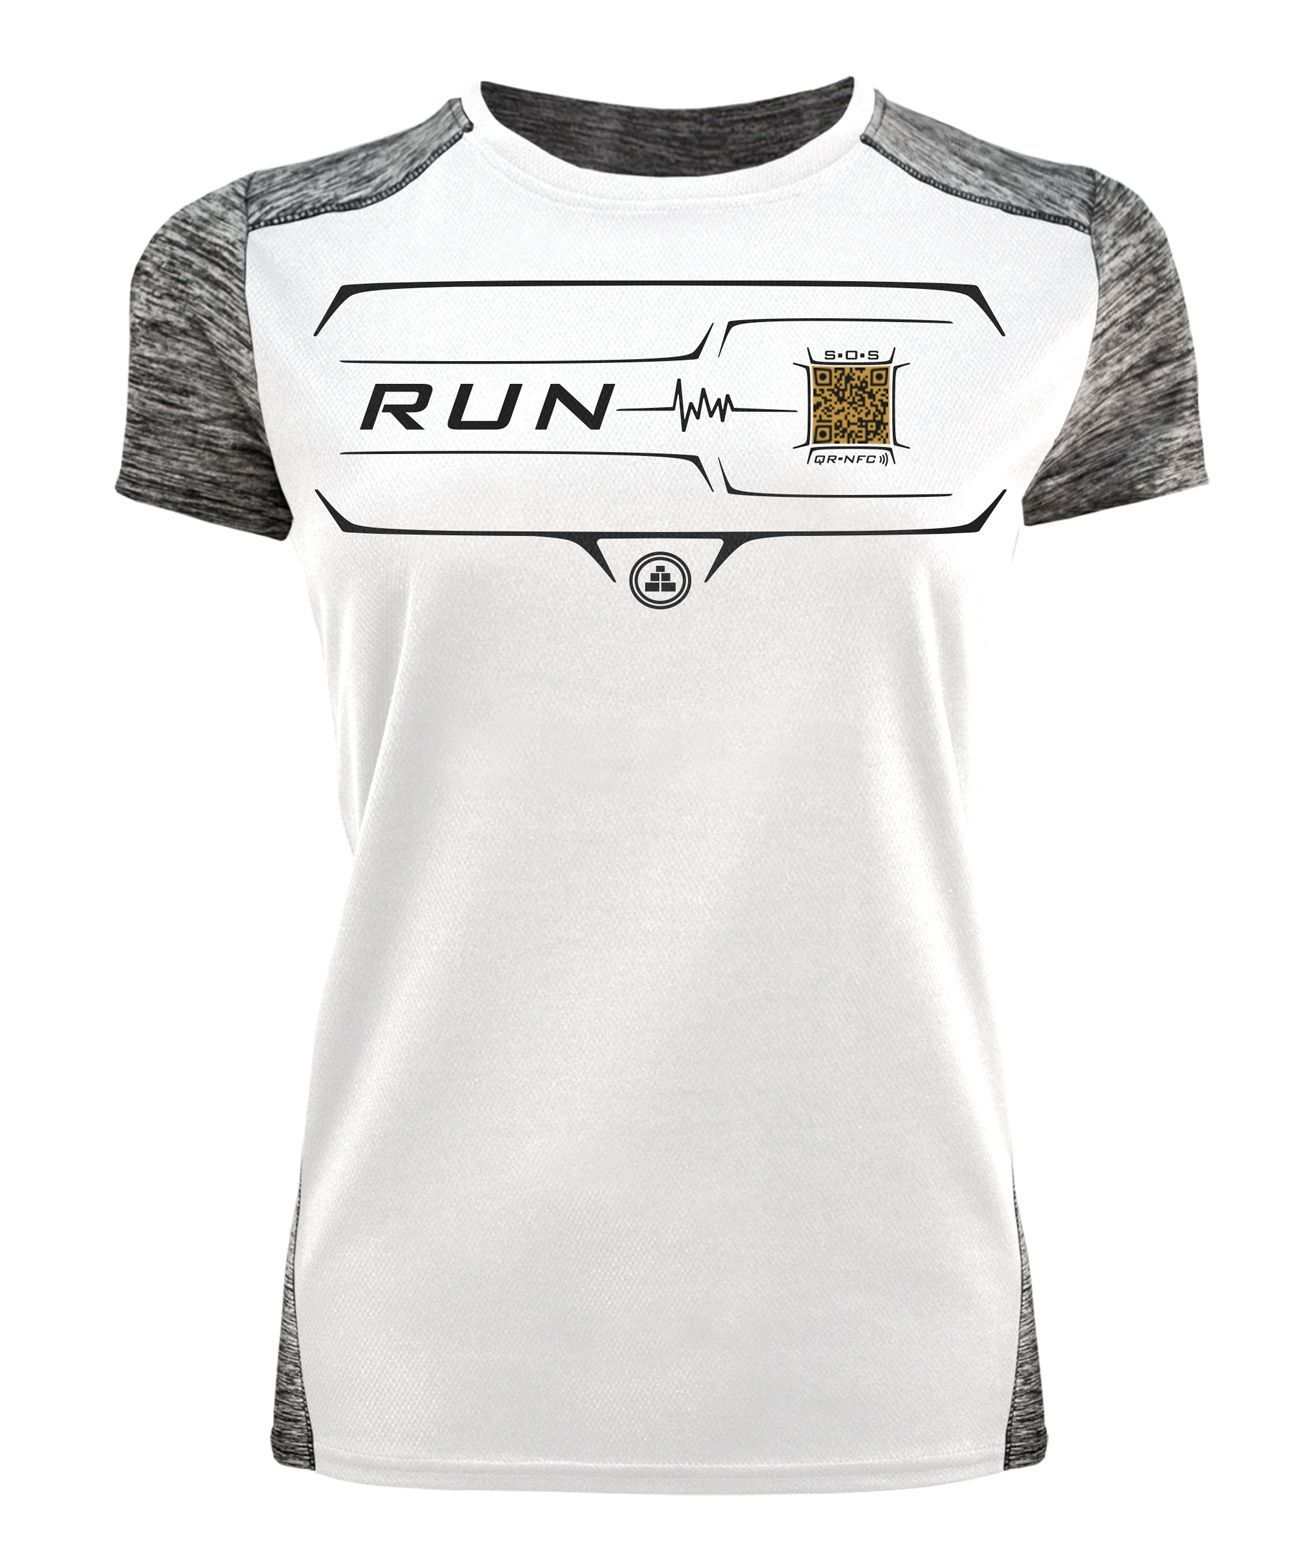 Camiseta deportiva contactless QR mujer en color blanco